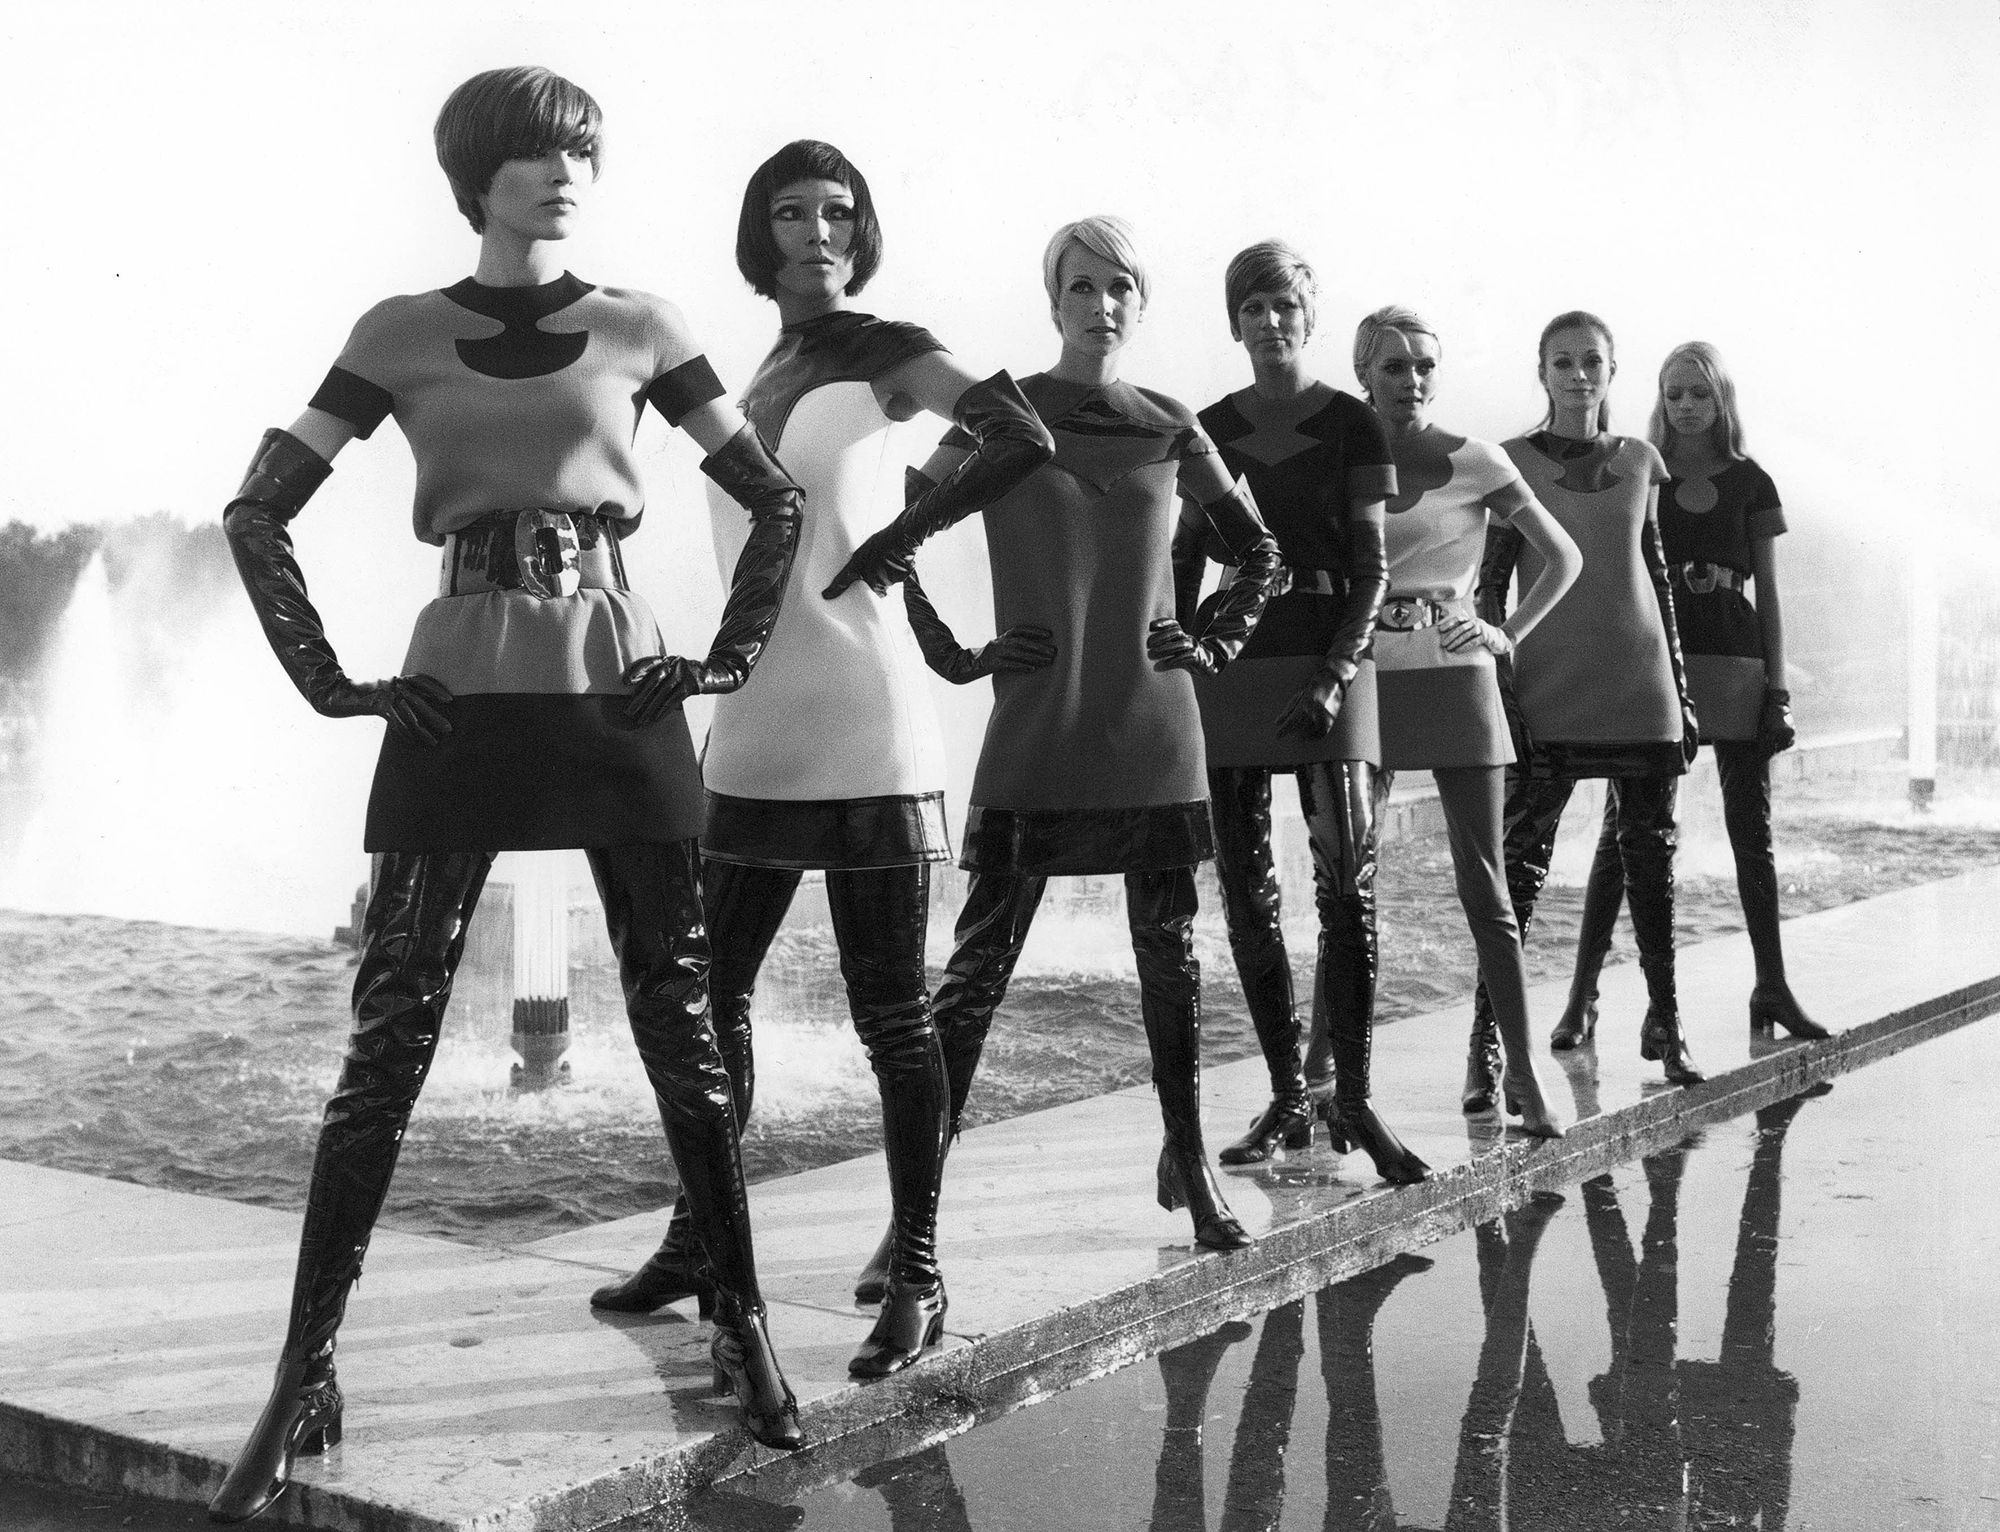 Pierre Cardin's Future Fashion